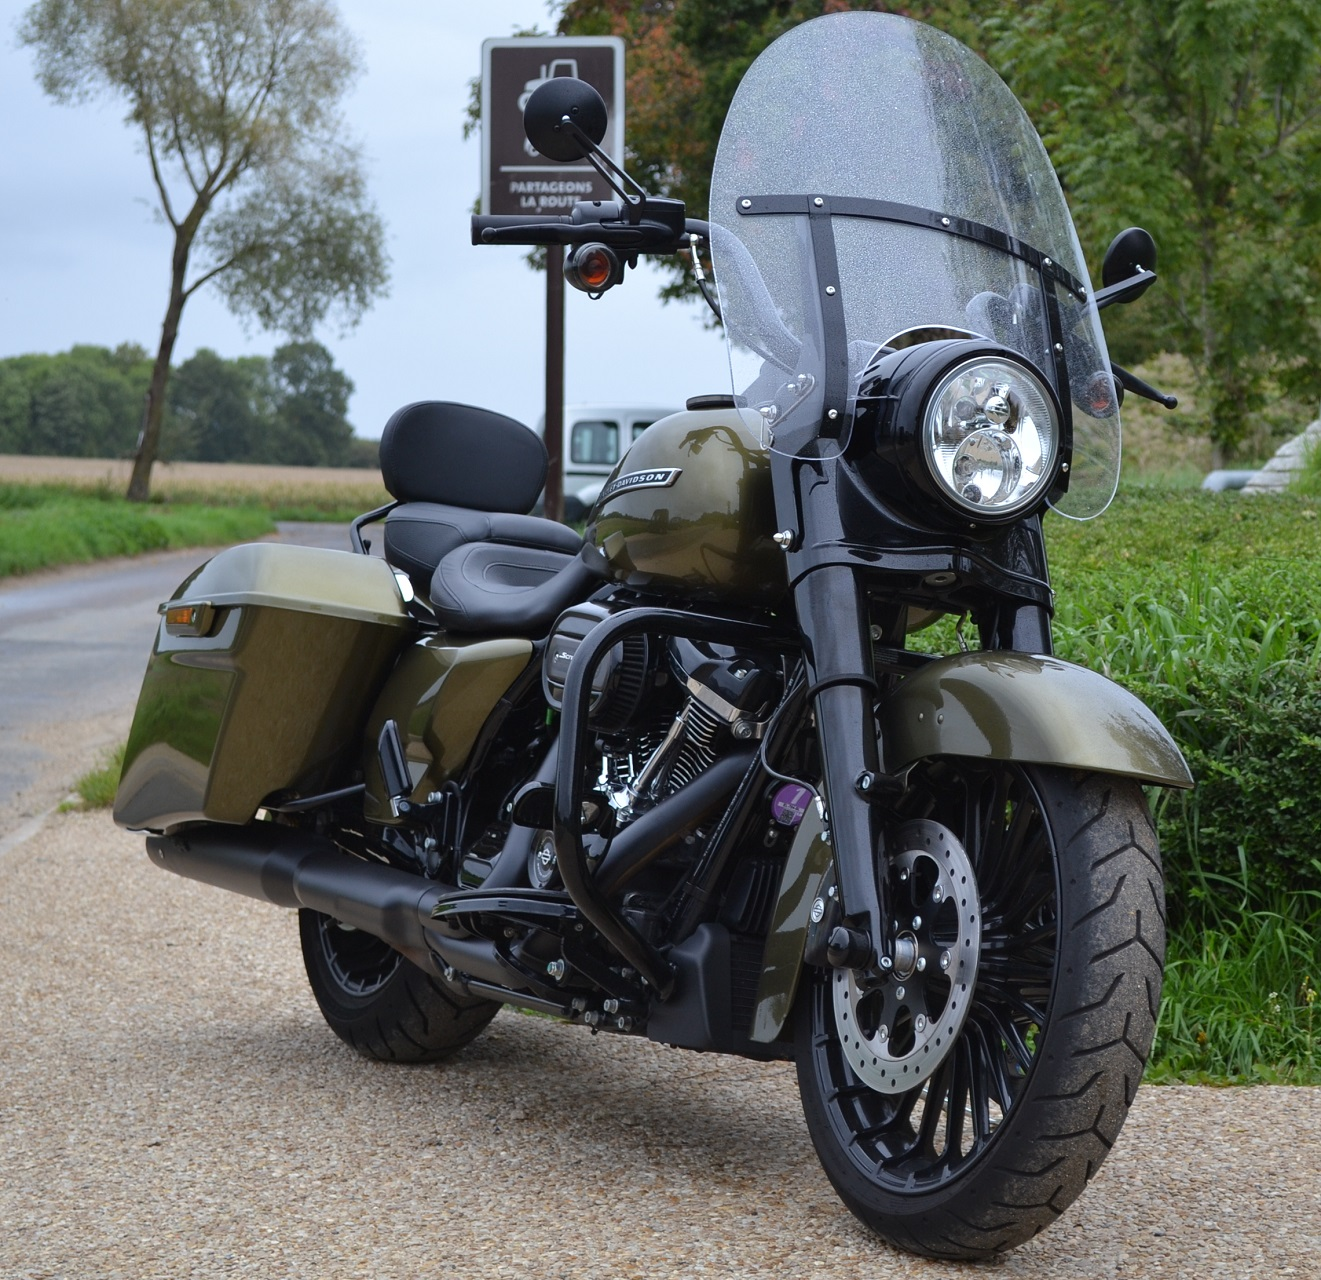 Mon Road King Special. Vive le touring! 6ee0bbd26327d05d9956f0bbc89862fb